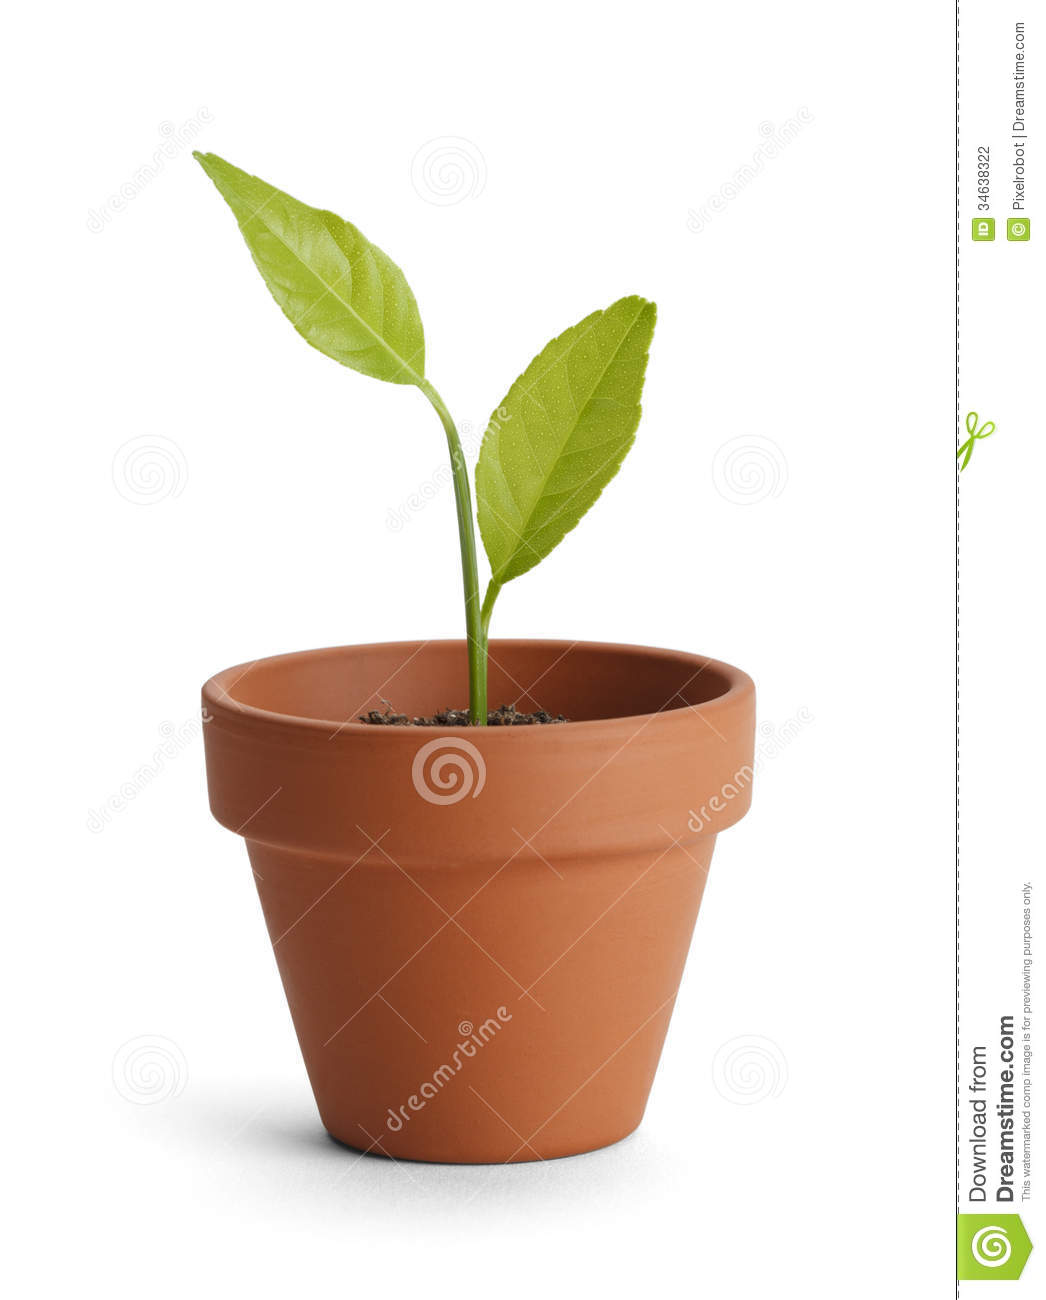 Potted plant stock photo image of empty photography What are miniature plants grown in pots called